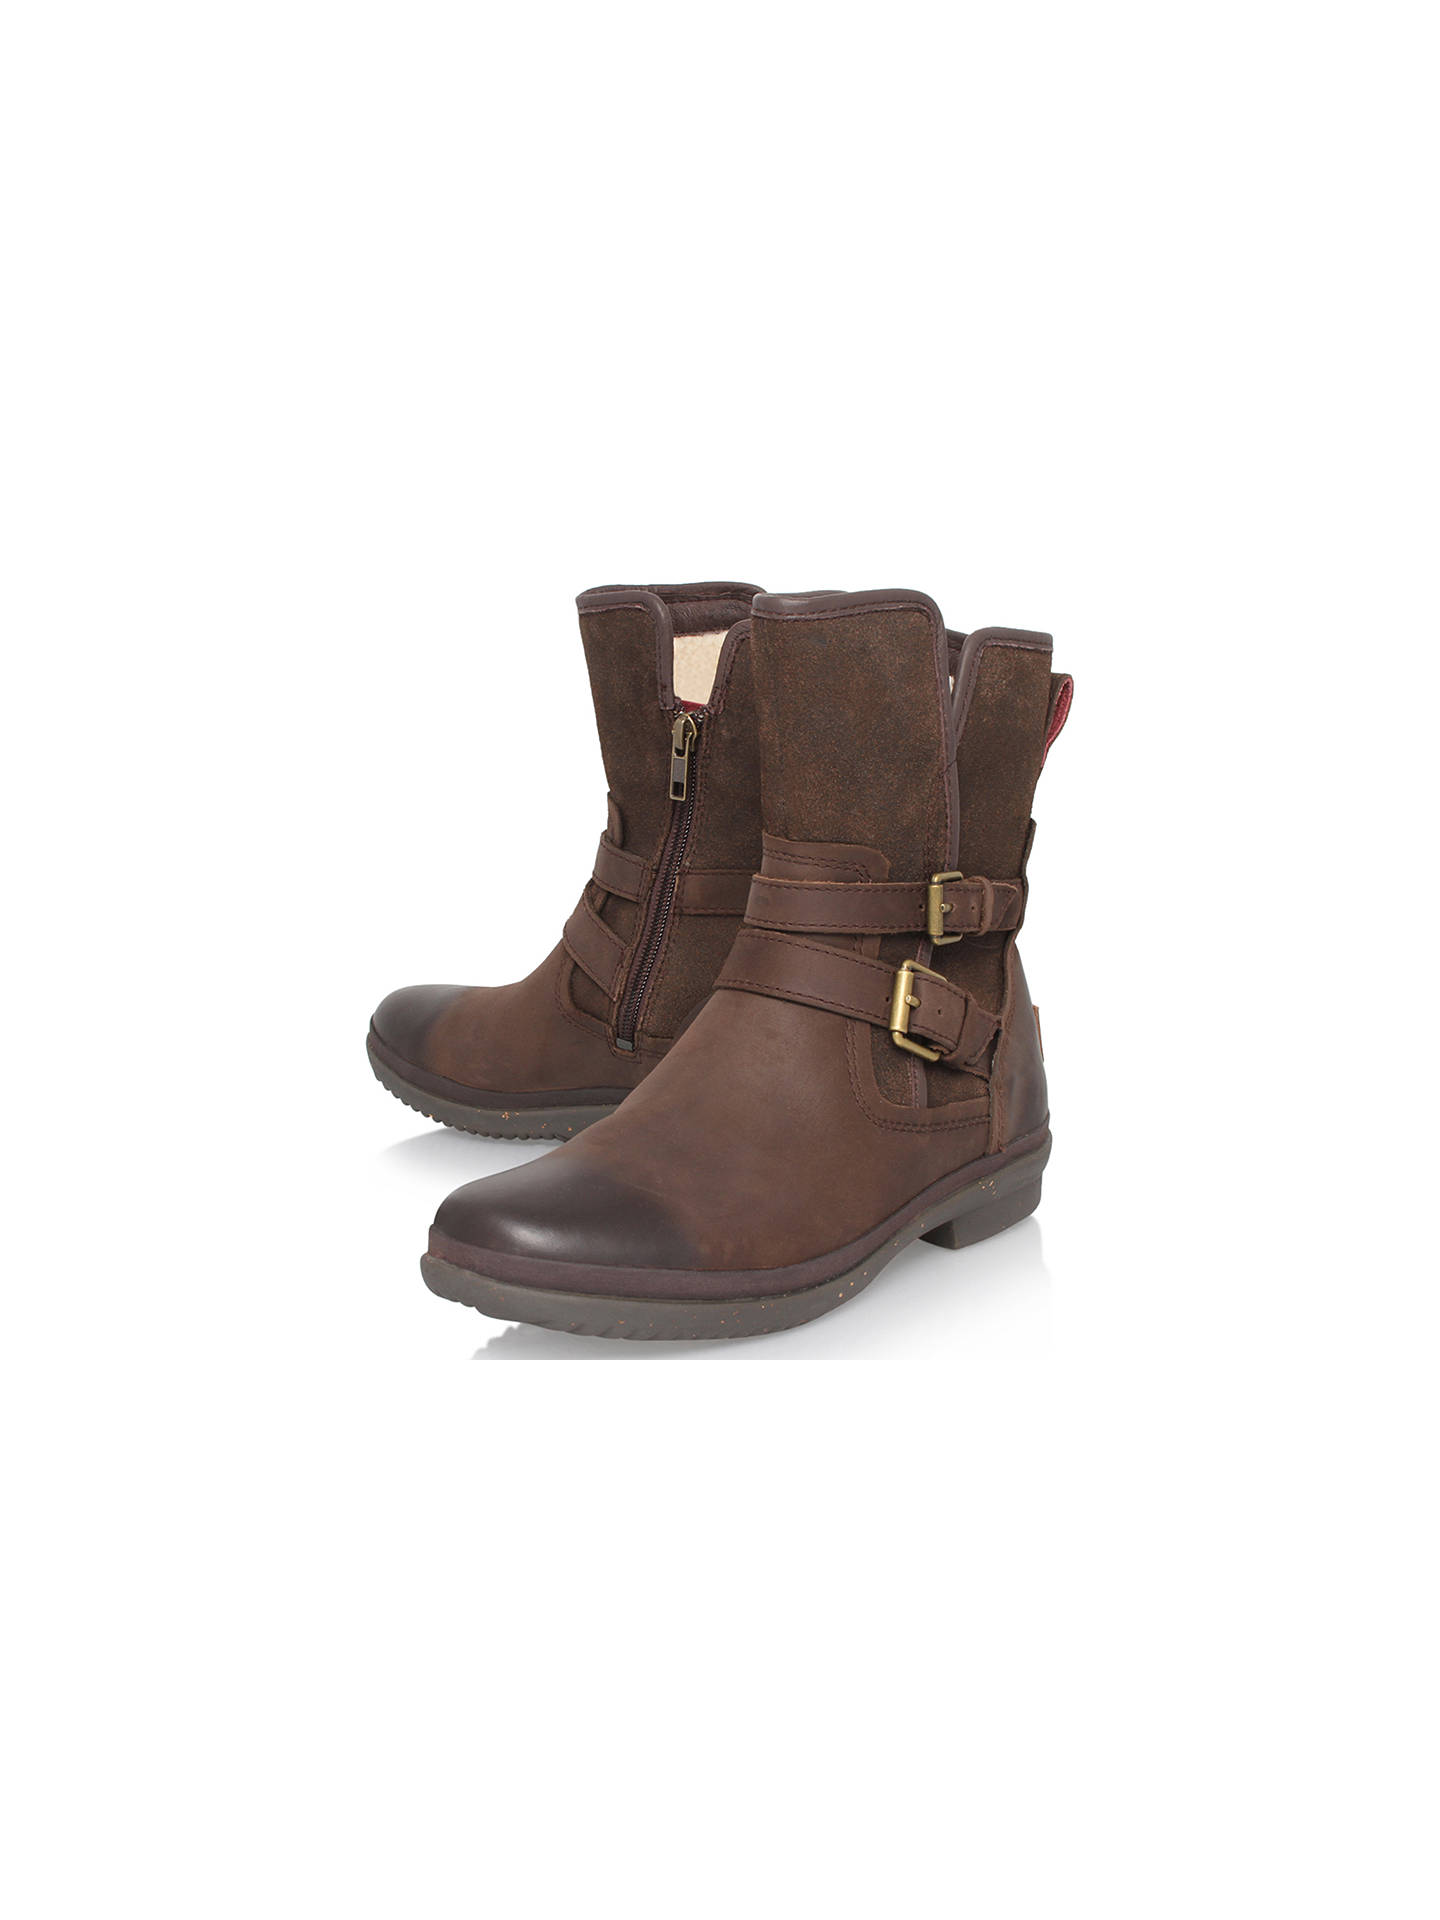 56033fd5b36 UGG Simmens Waterproof Ankle Boots at John Lewis & Partners